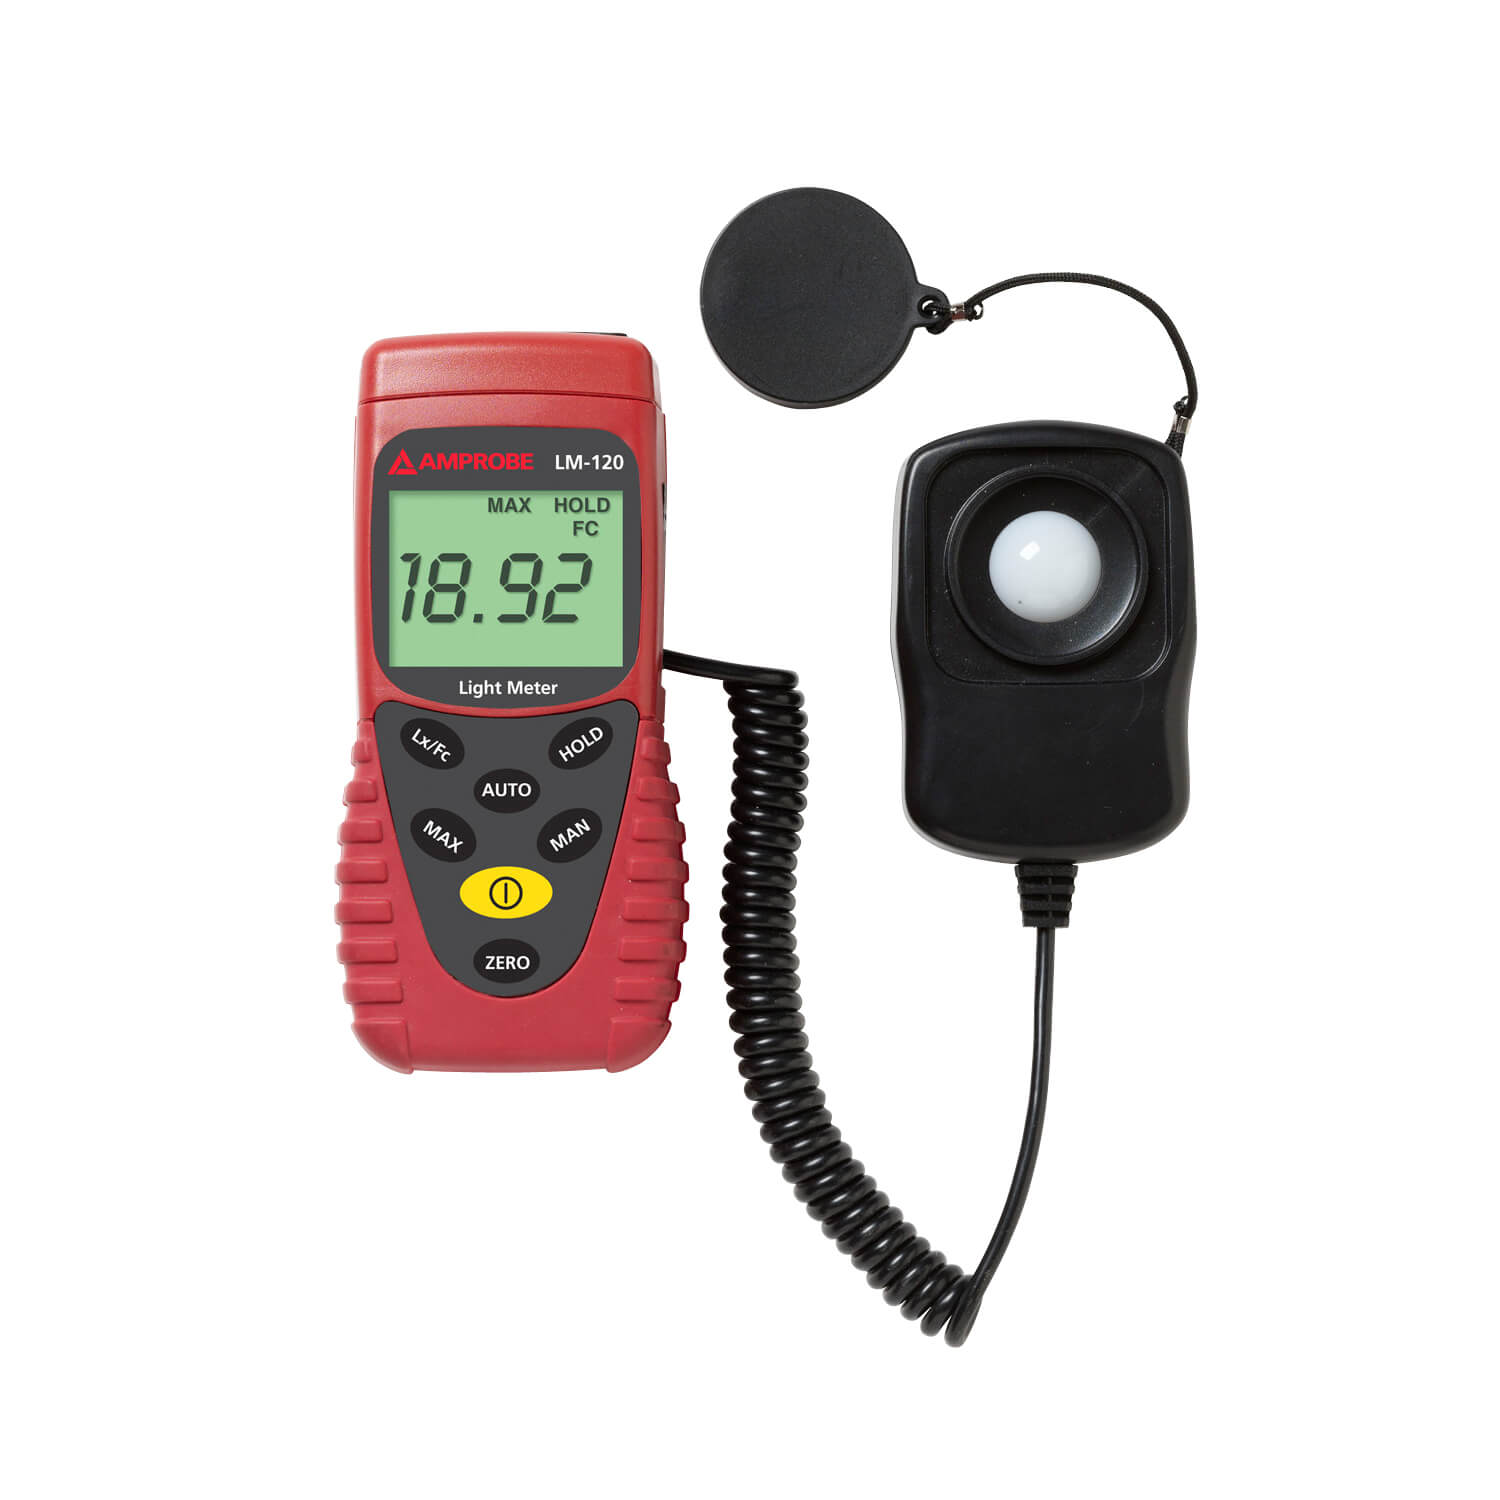 Amprobe LM-120 Handheld Light Meter